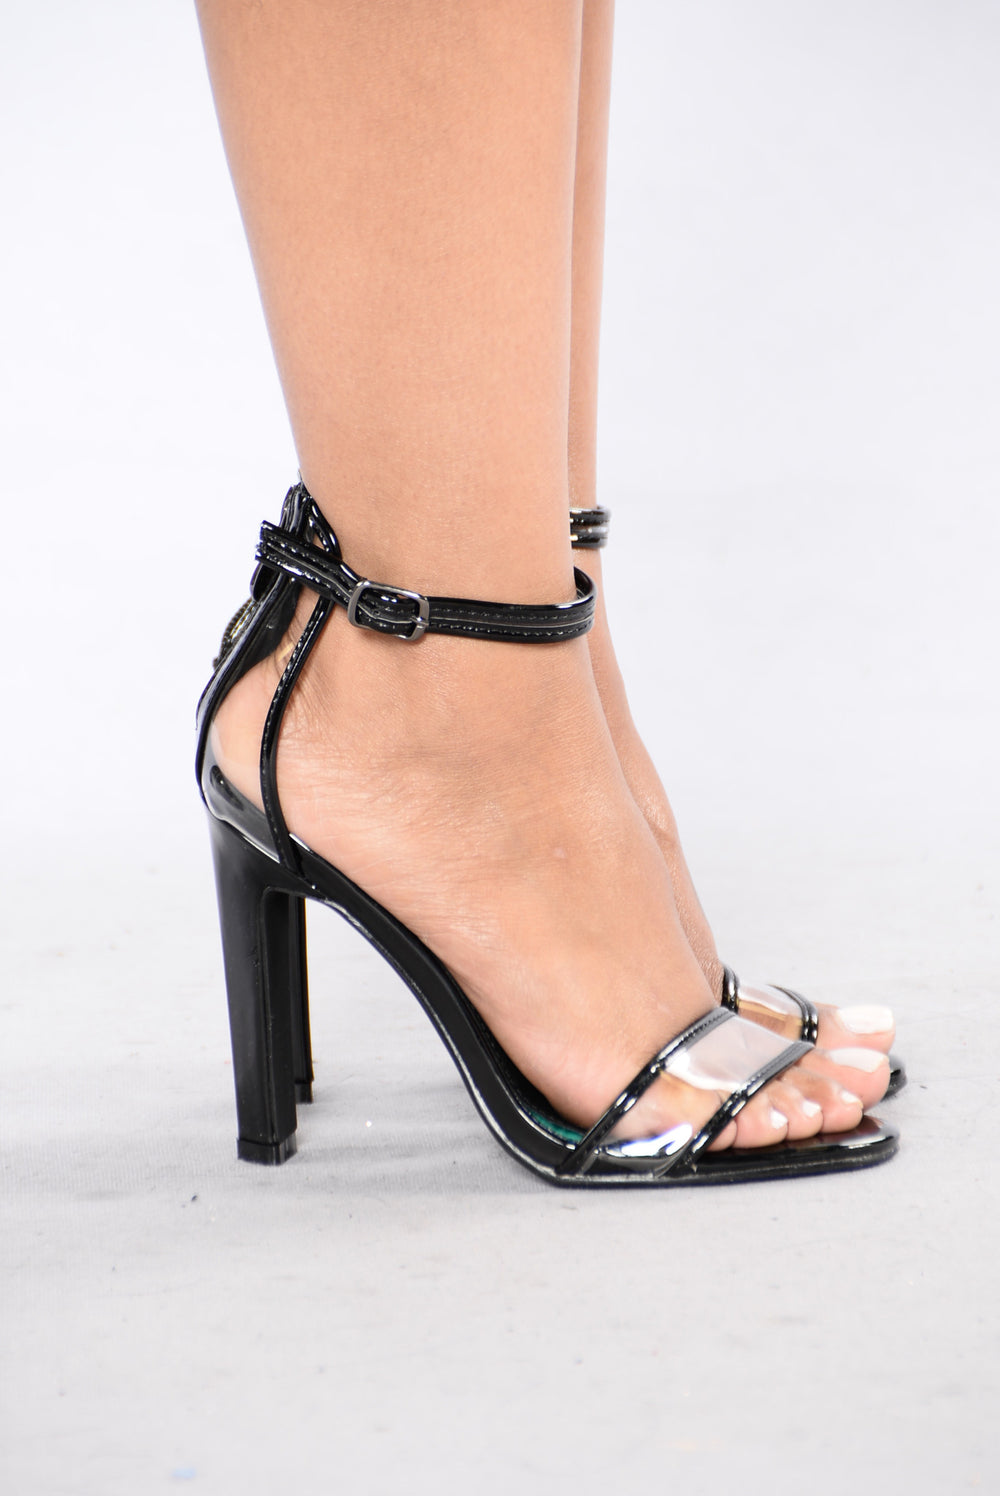 Do Something About It Heel - Black